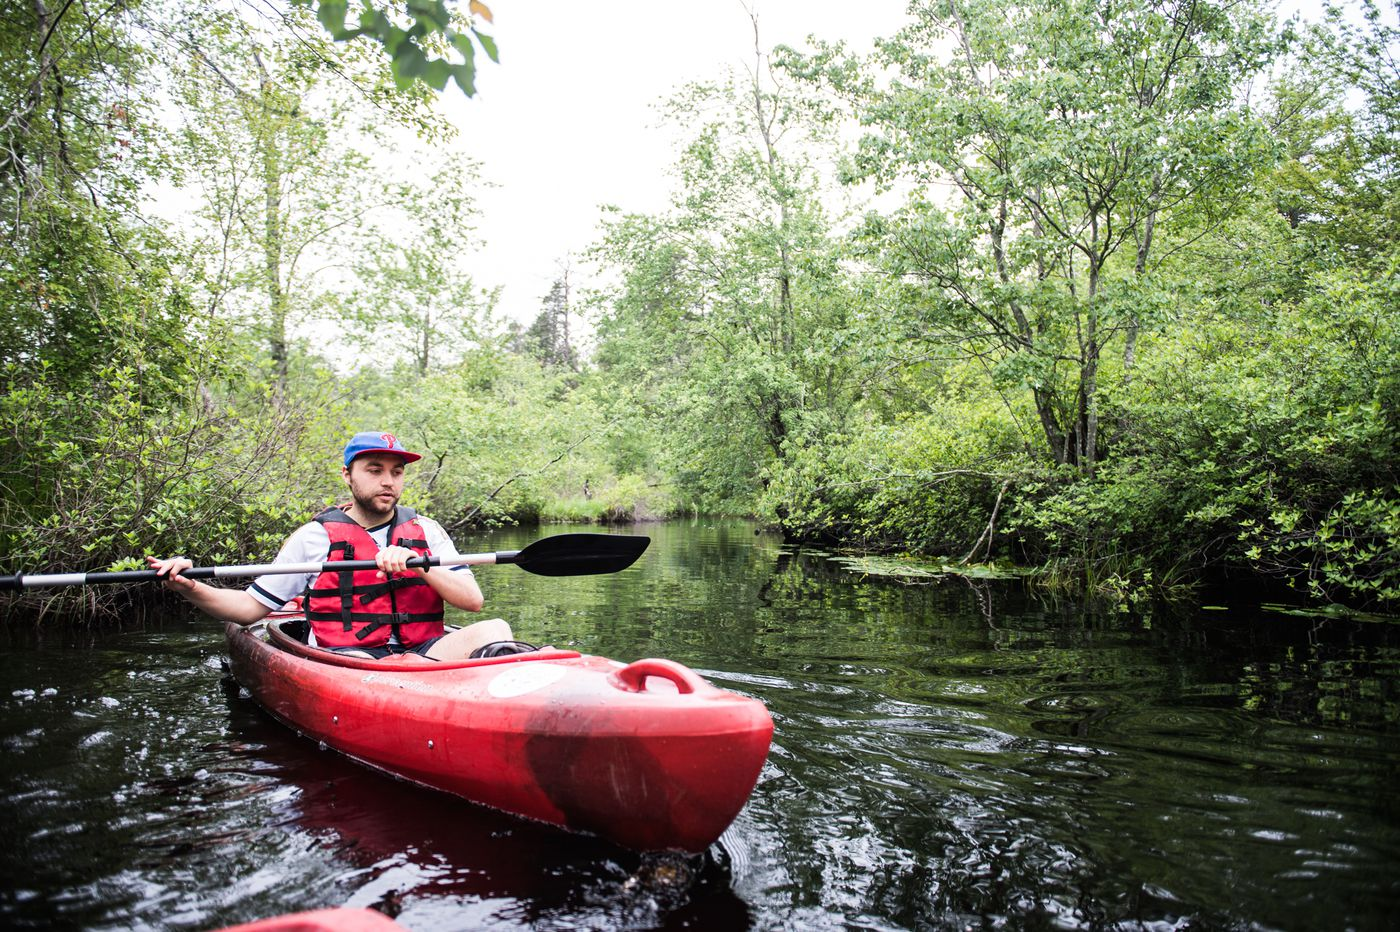 Where to rent and use kayaks and canoes in and near Philadelphia